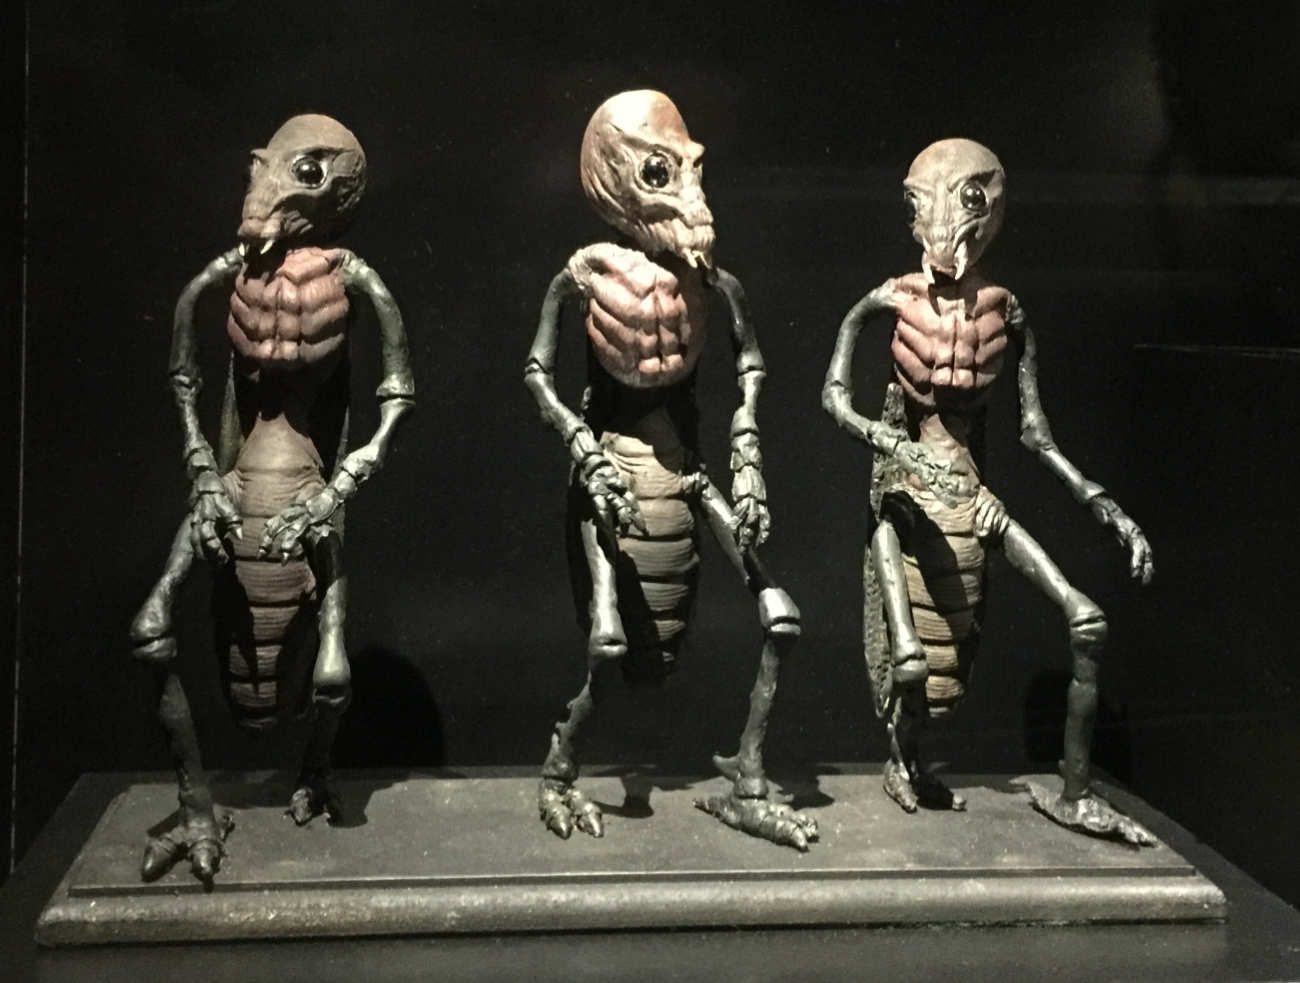 Stop motion miniatures by Ray Harryhausen